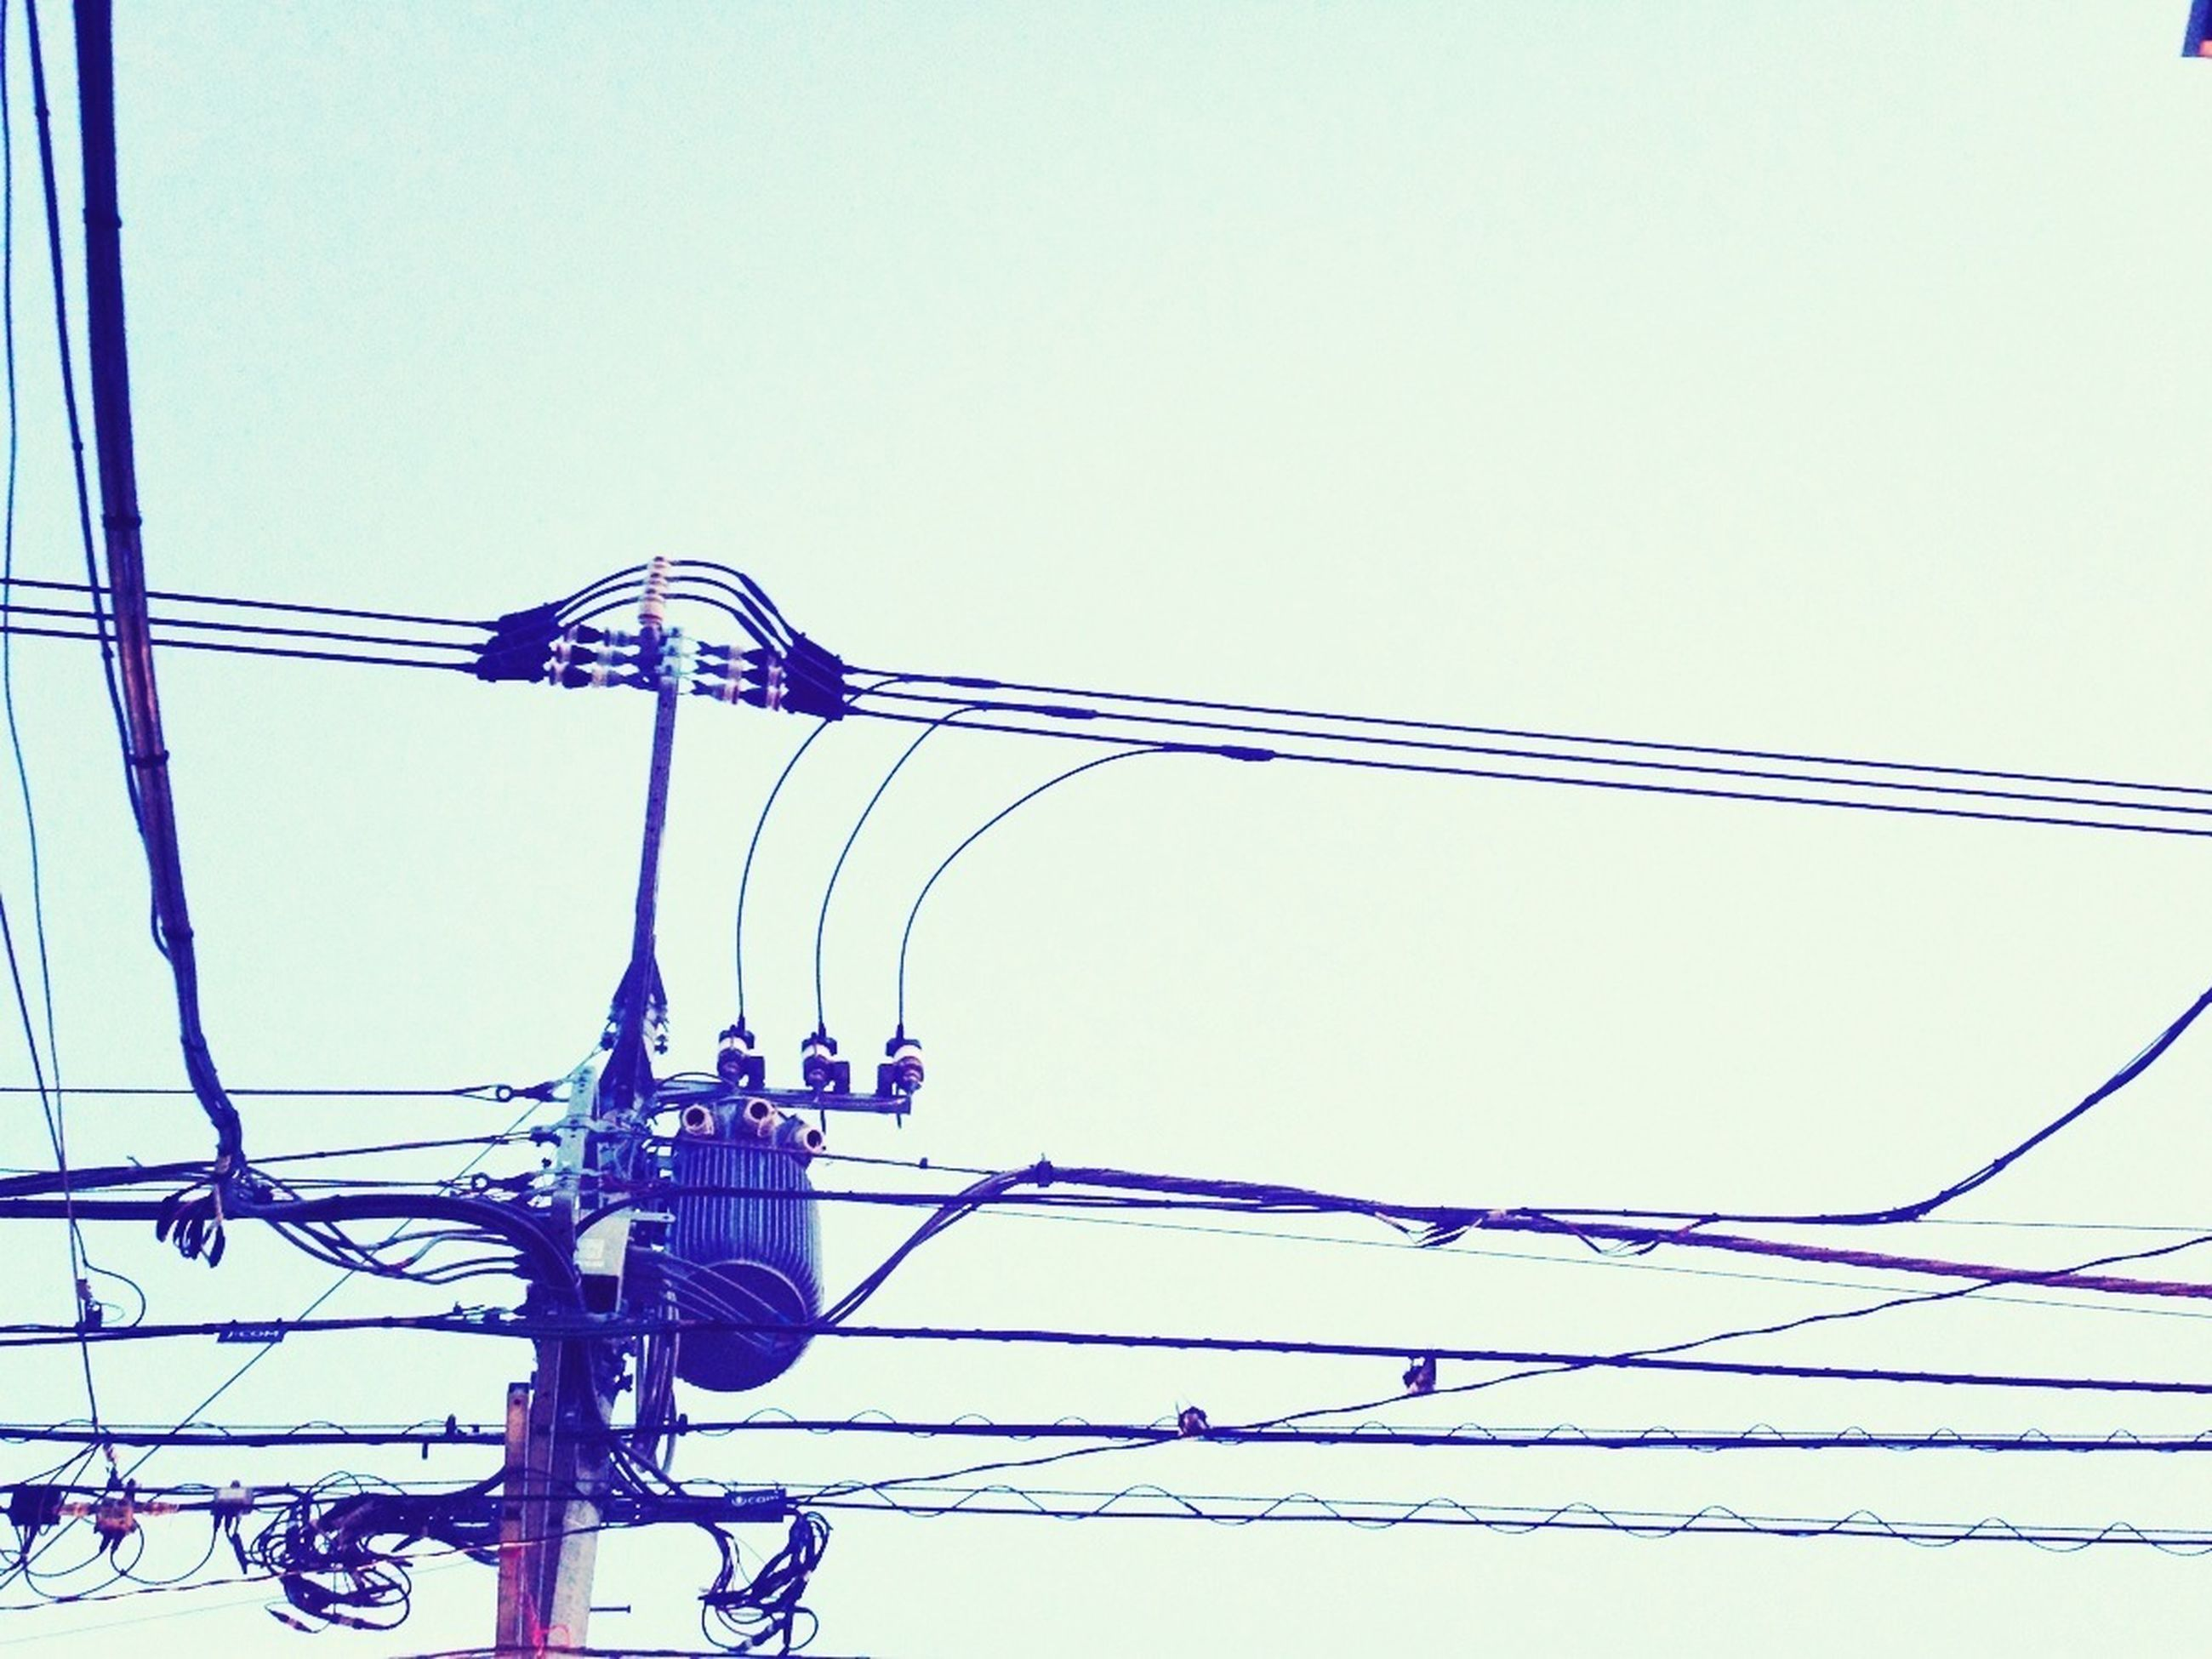 clear sky, low angle view, copy space, blue, connection, cable, power line, built structure, electricity, metal, architecture, day, technology, electricity pylon, power supply, outdoors, no people, high section, street light, protection